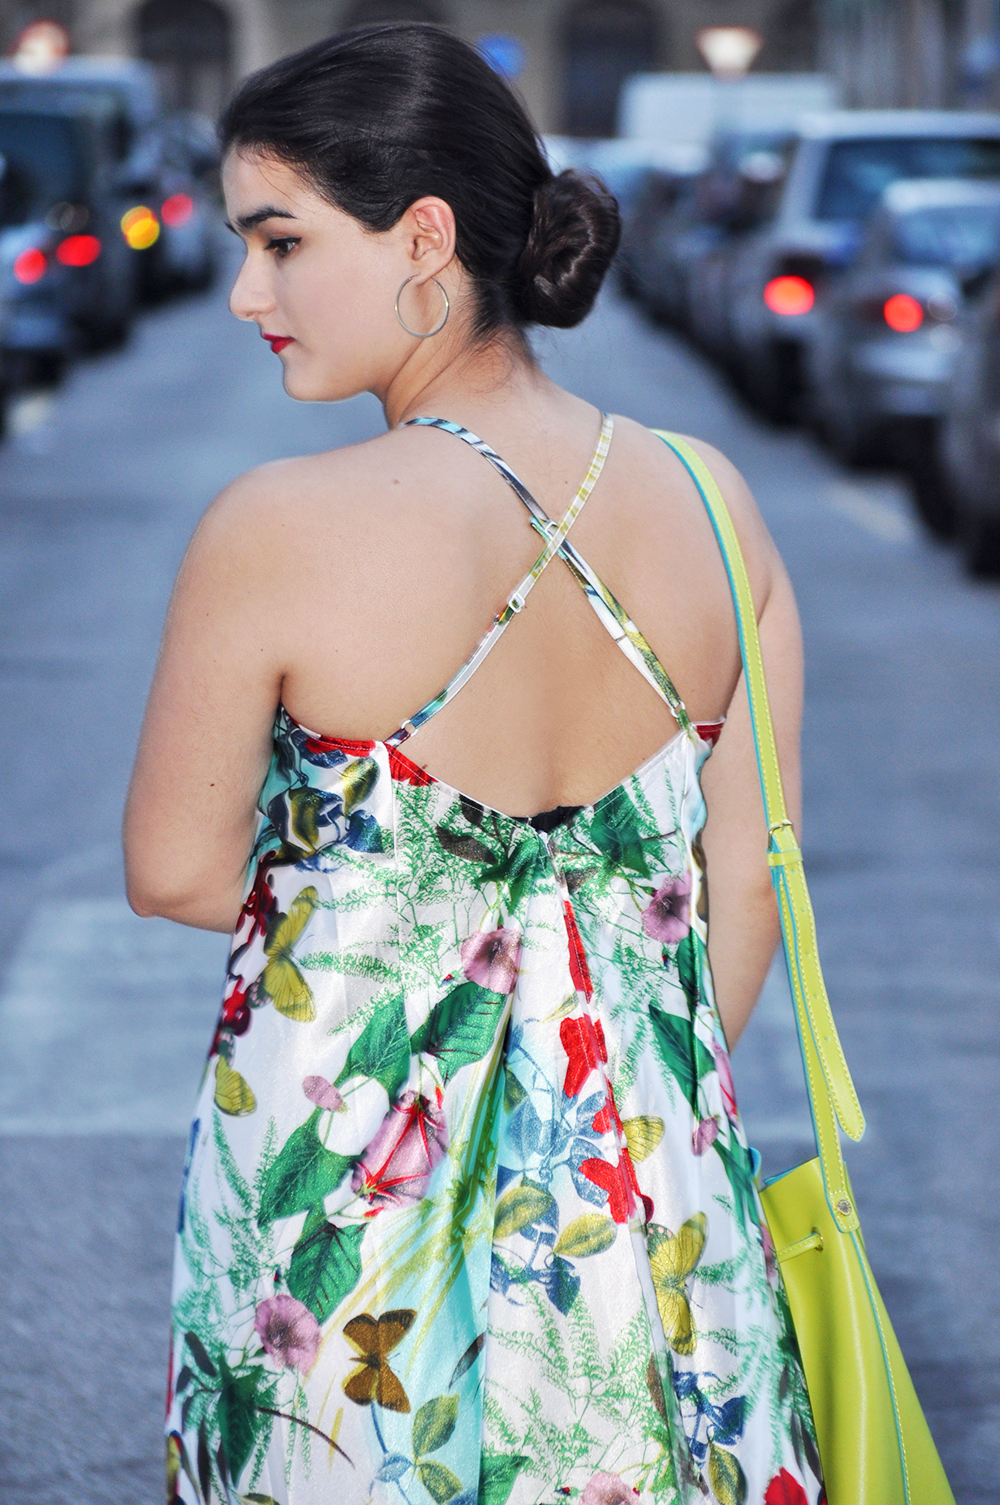 valencia fashion blogger, something fashion moda style streetstyle, floral flower dress how to wear, stonefly steve madden bag, spanish typical outfit flamenco low bun hairstyle